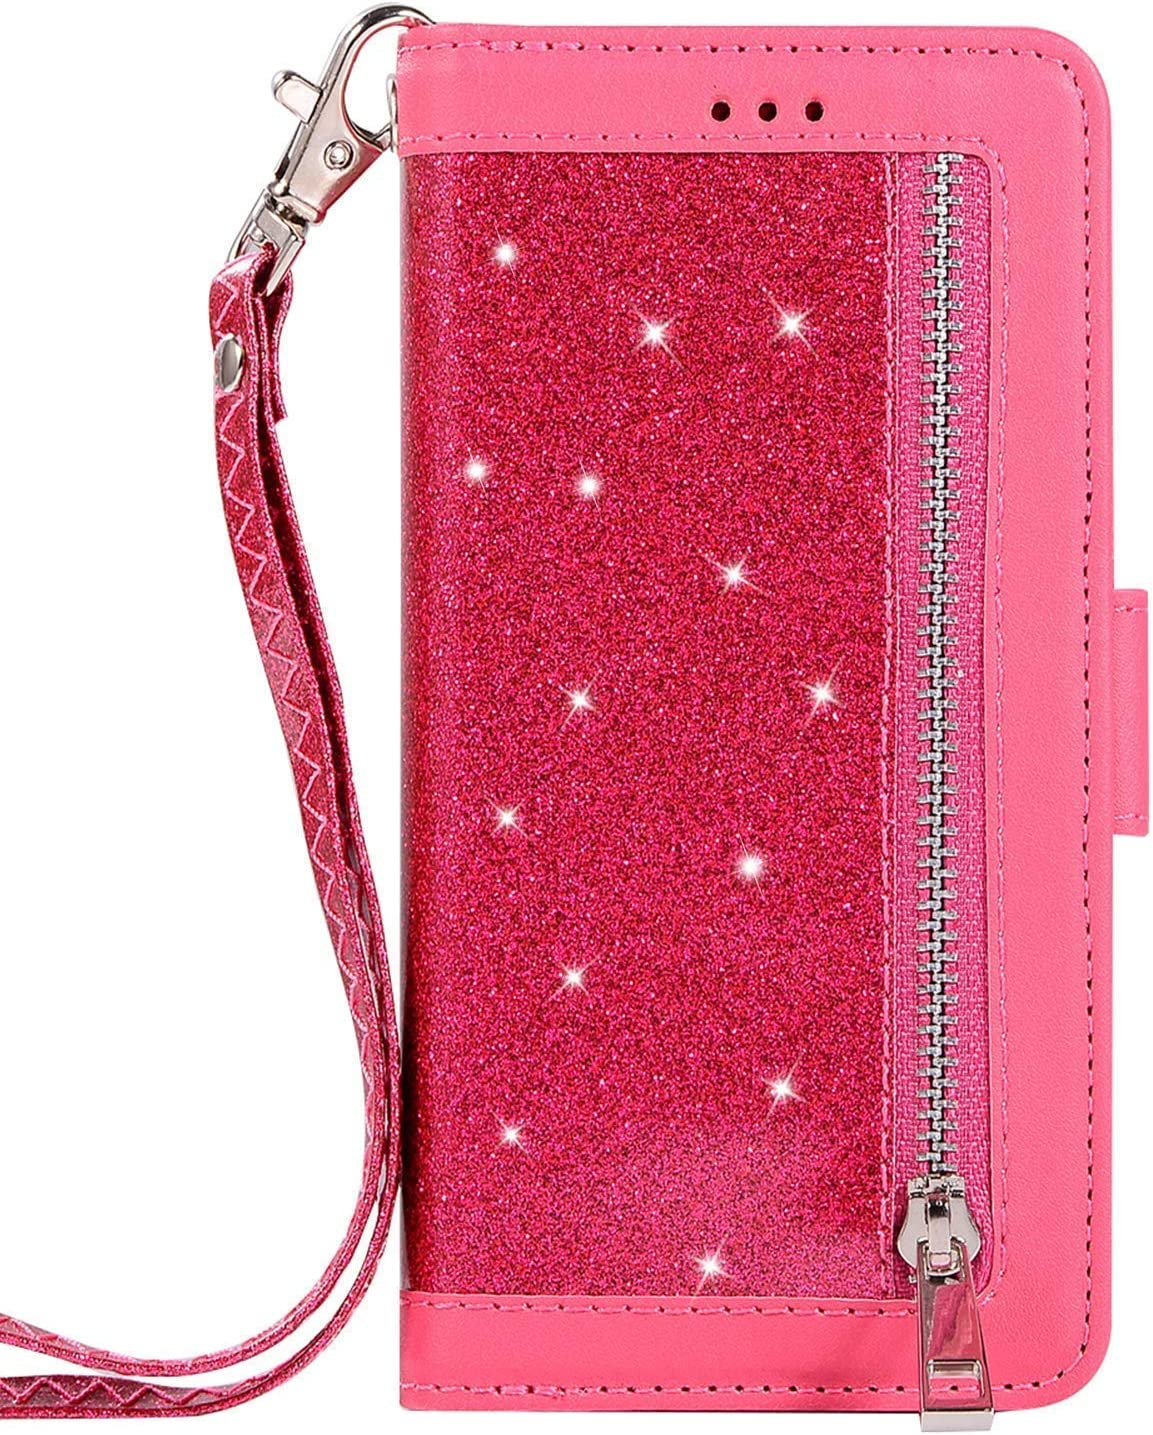 Herbests Compatible with iPhone XS Max Wallet Case Zipper Luxury Bling Glitter Shockproof Protective Leather Flip Cover 9 Card Slots Magnetic Phone Cover /& Strap Kickstand,Silver